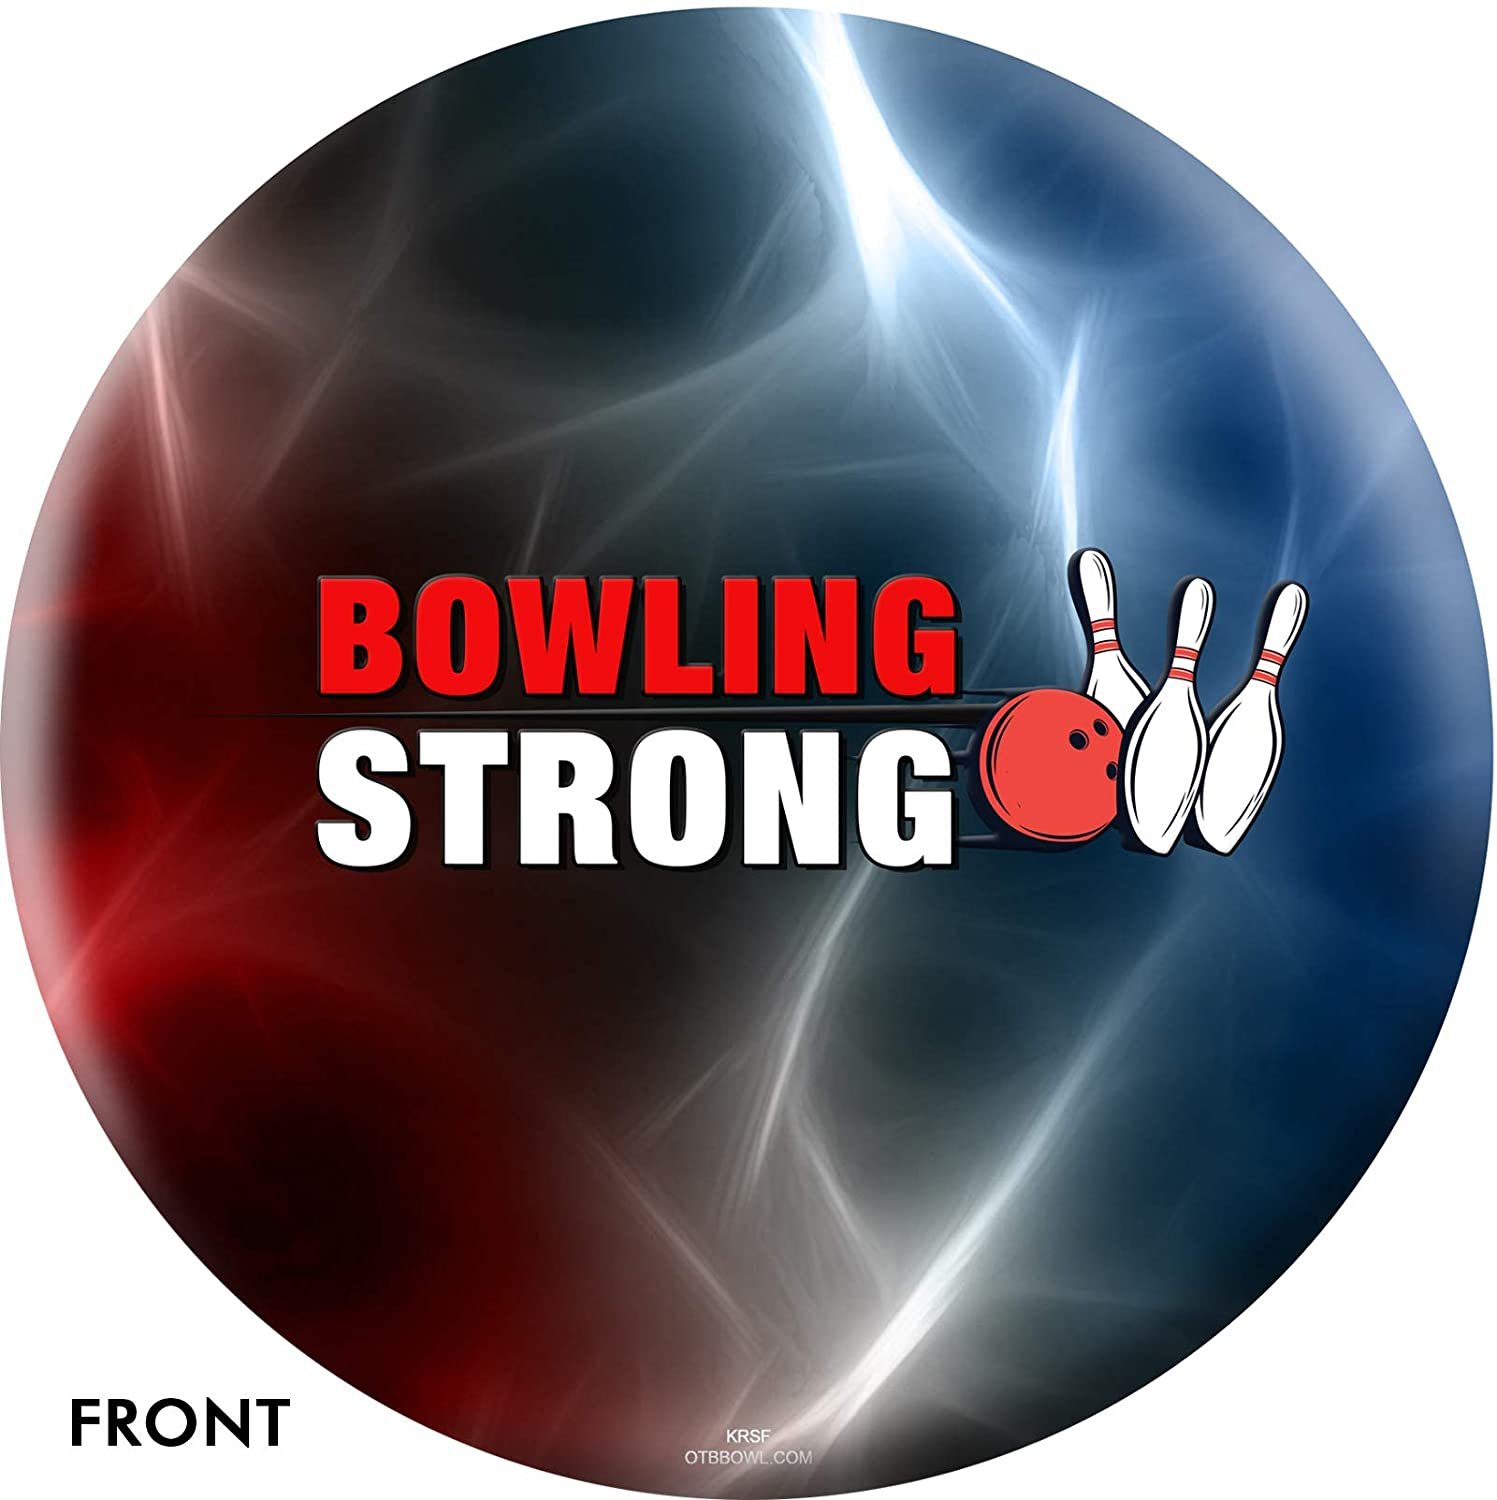 On The Ball Bowling Bowling Strong USA Get The Ball Rolling Bowling Ball